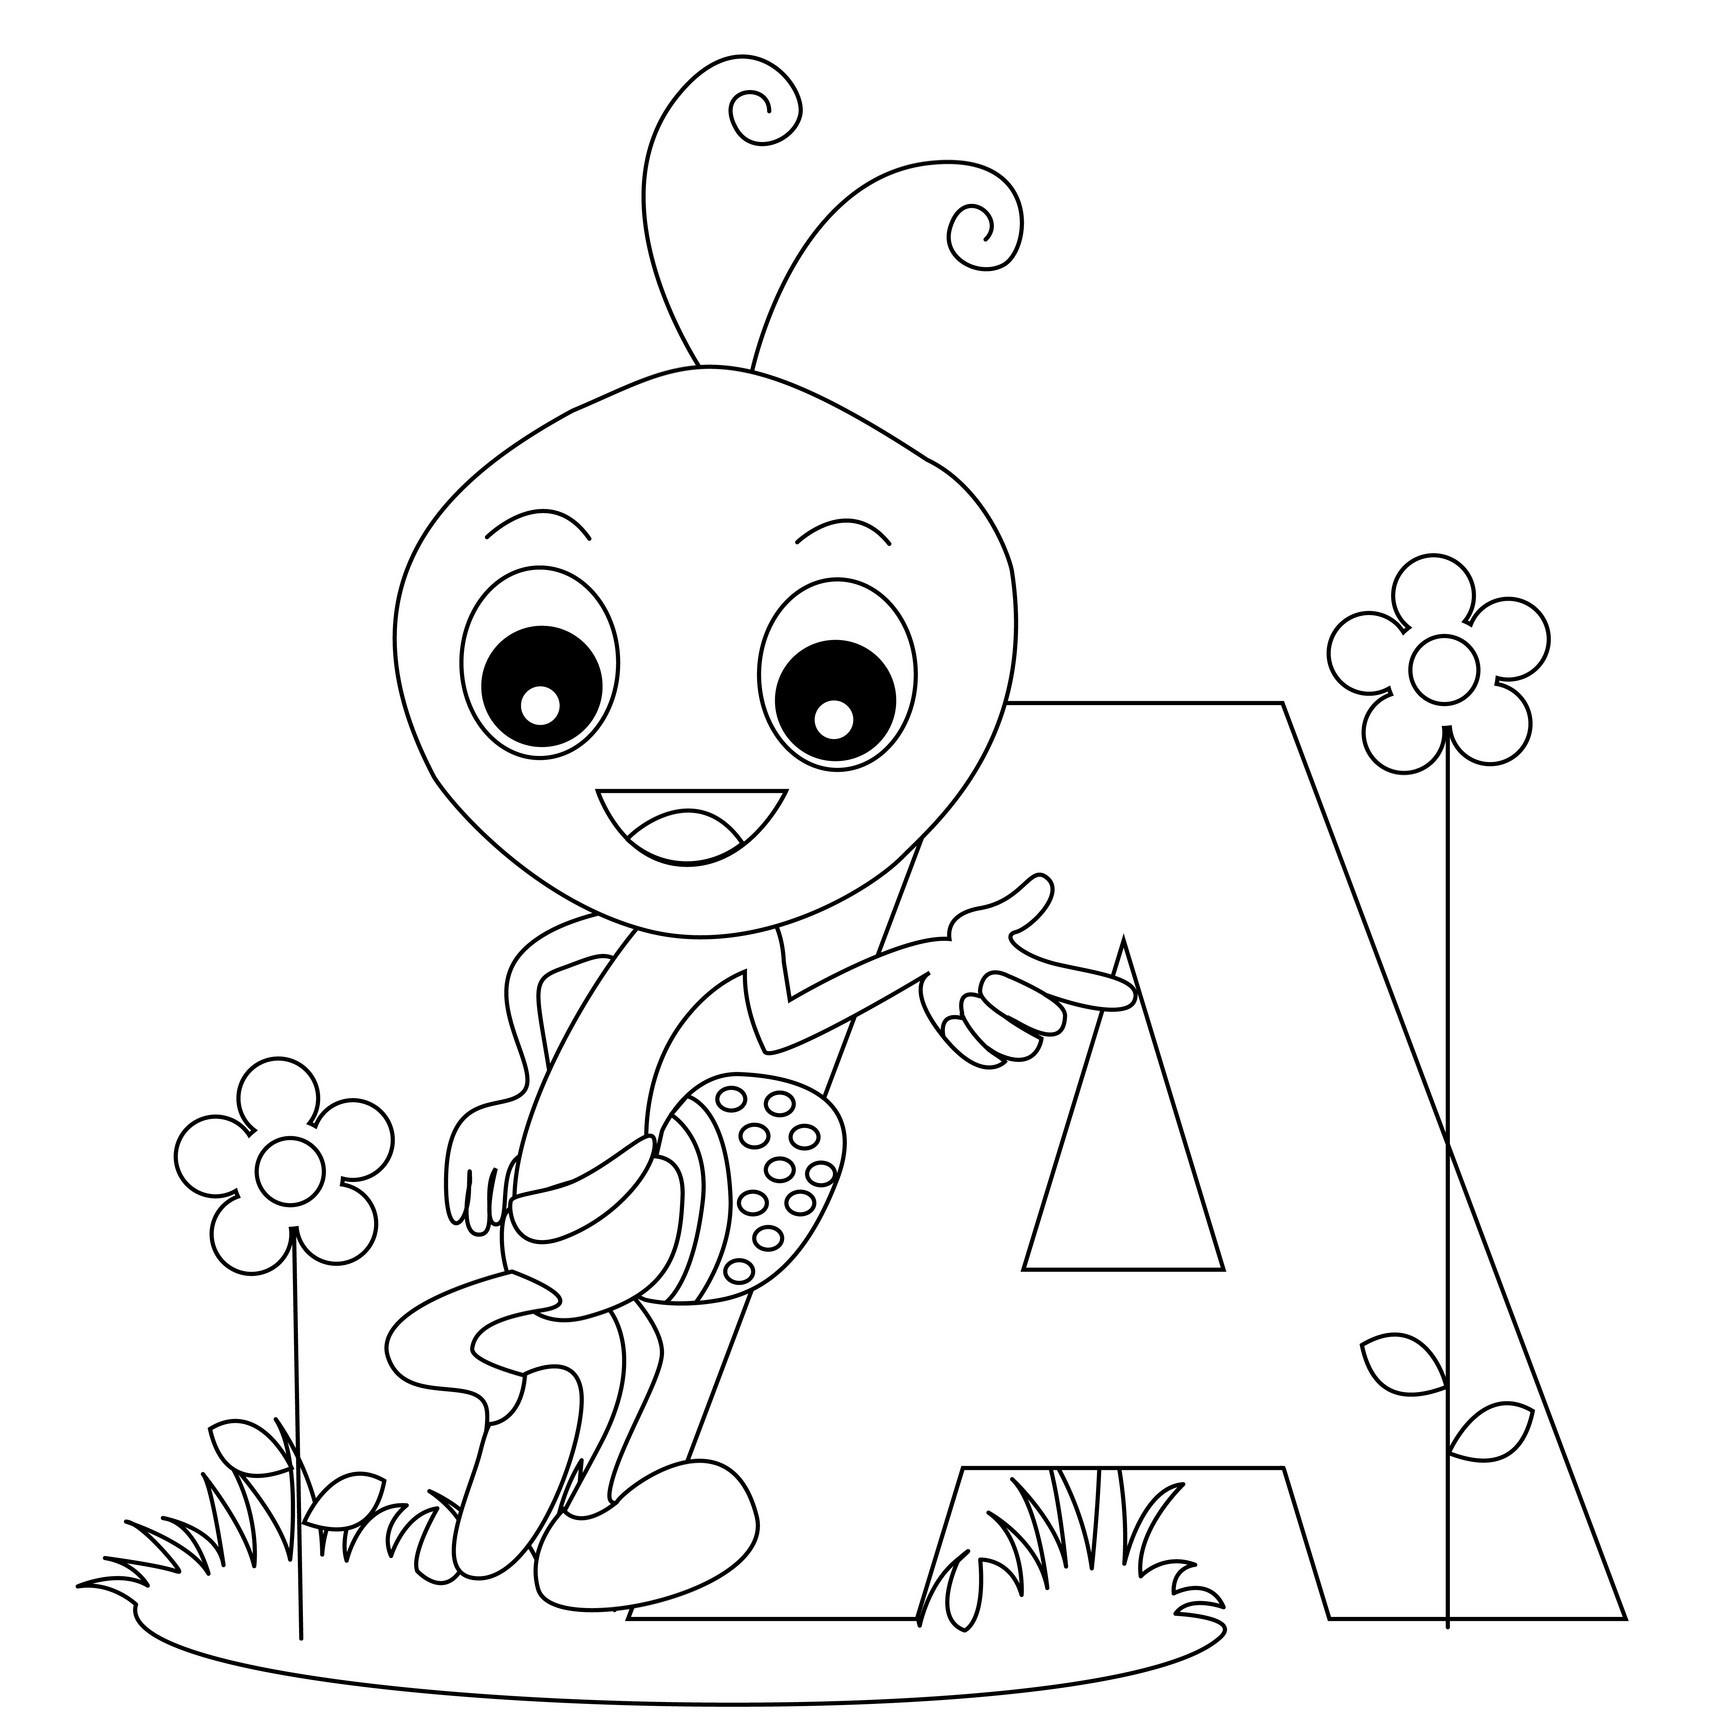 coloring pages for alphalbet - photo#1